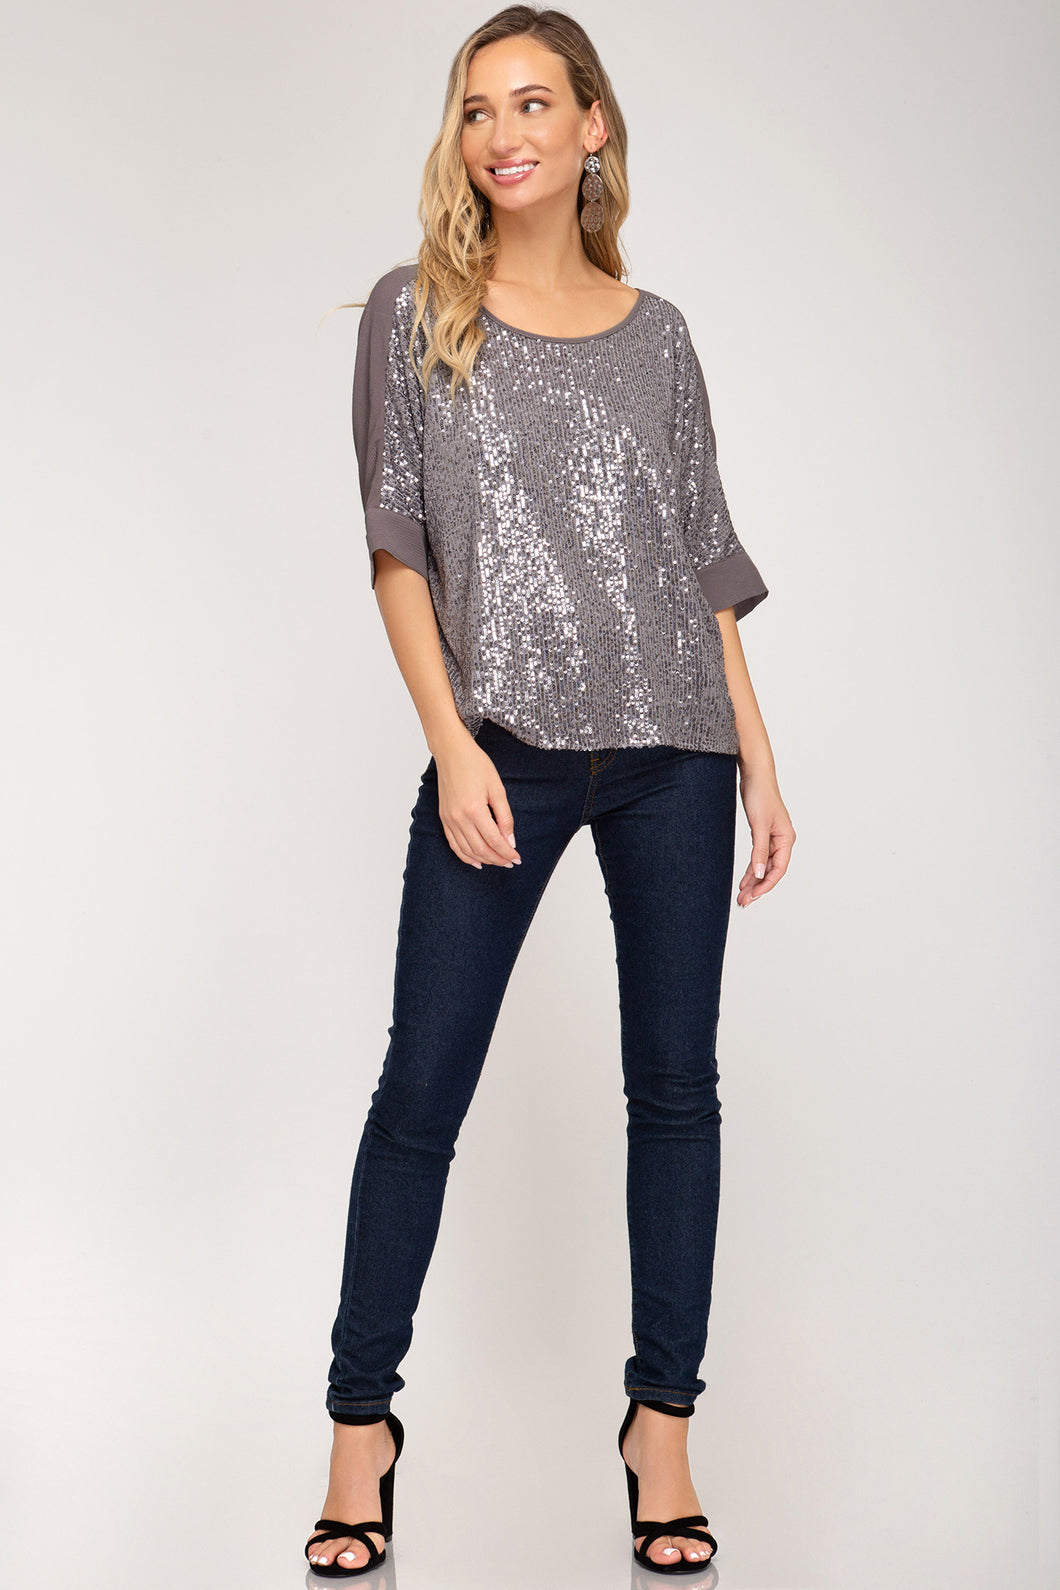 She + Sky - Batwing Sequin Top with Contrast Back - Sassy Girl Boutique NJ